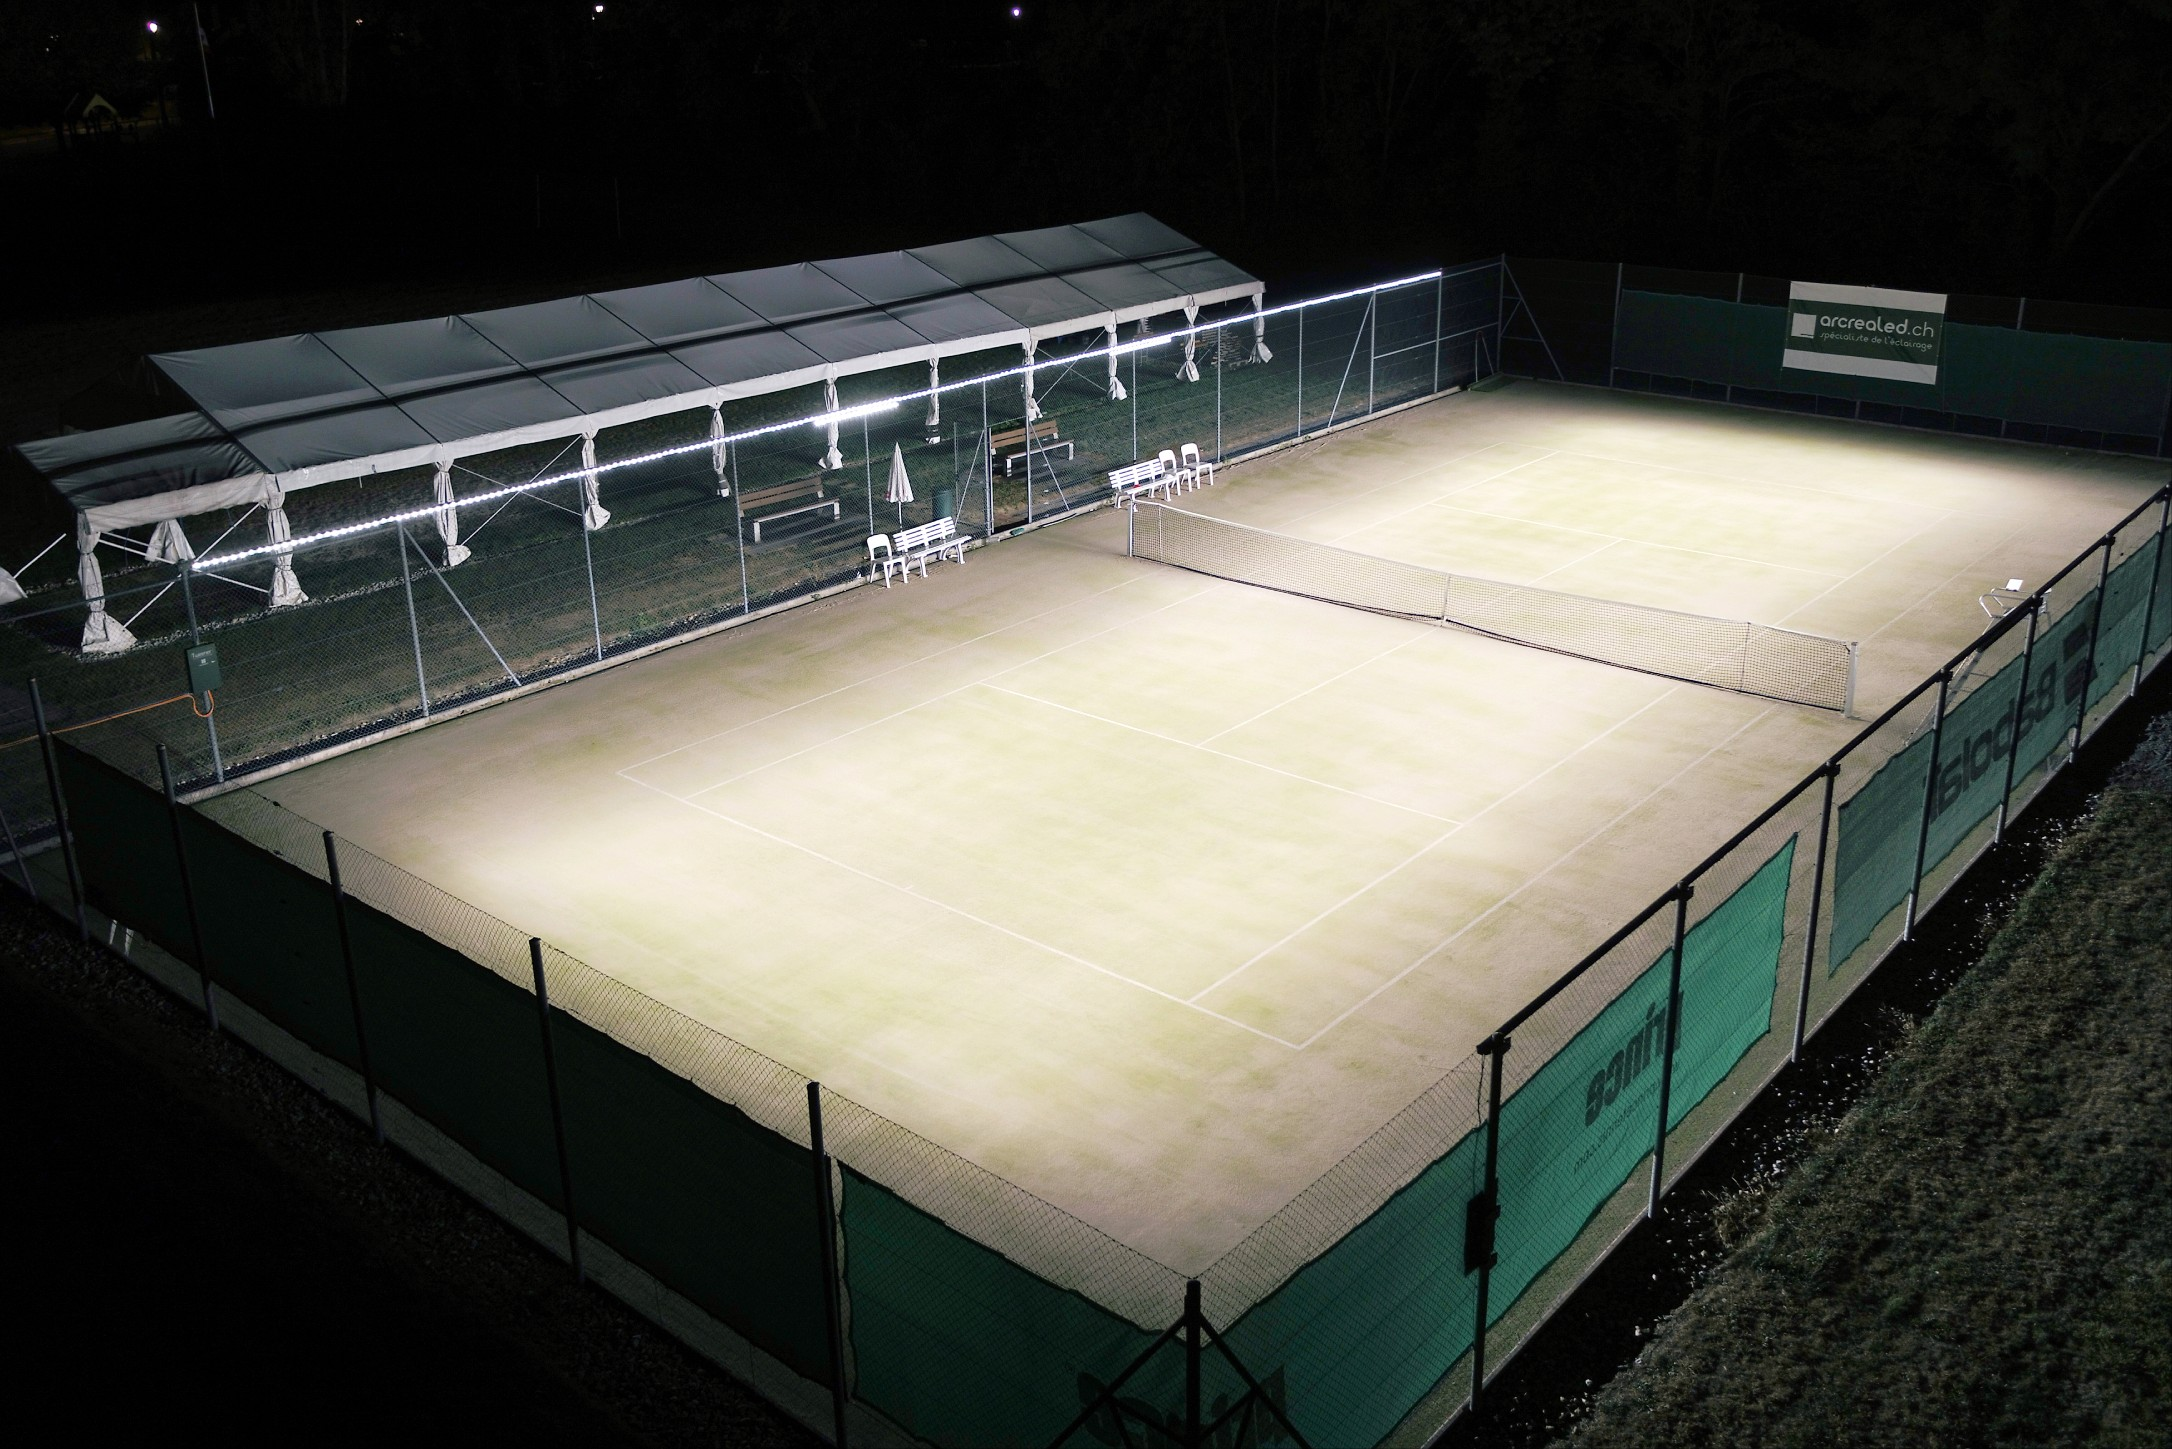 Tweener®'s revolutionary LED tennis court lighting provides optimal floodlighting at half the cost.